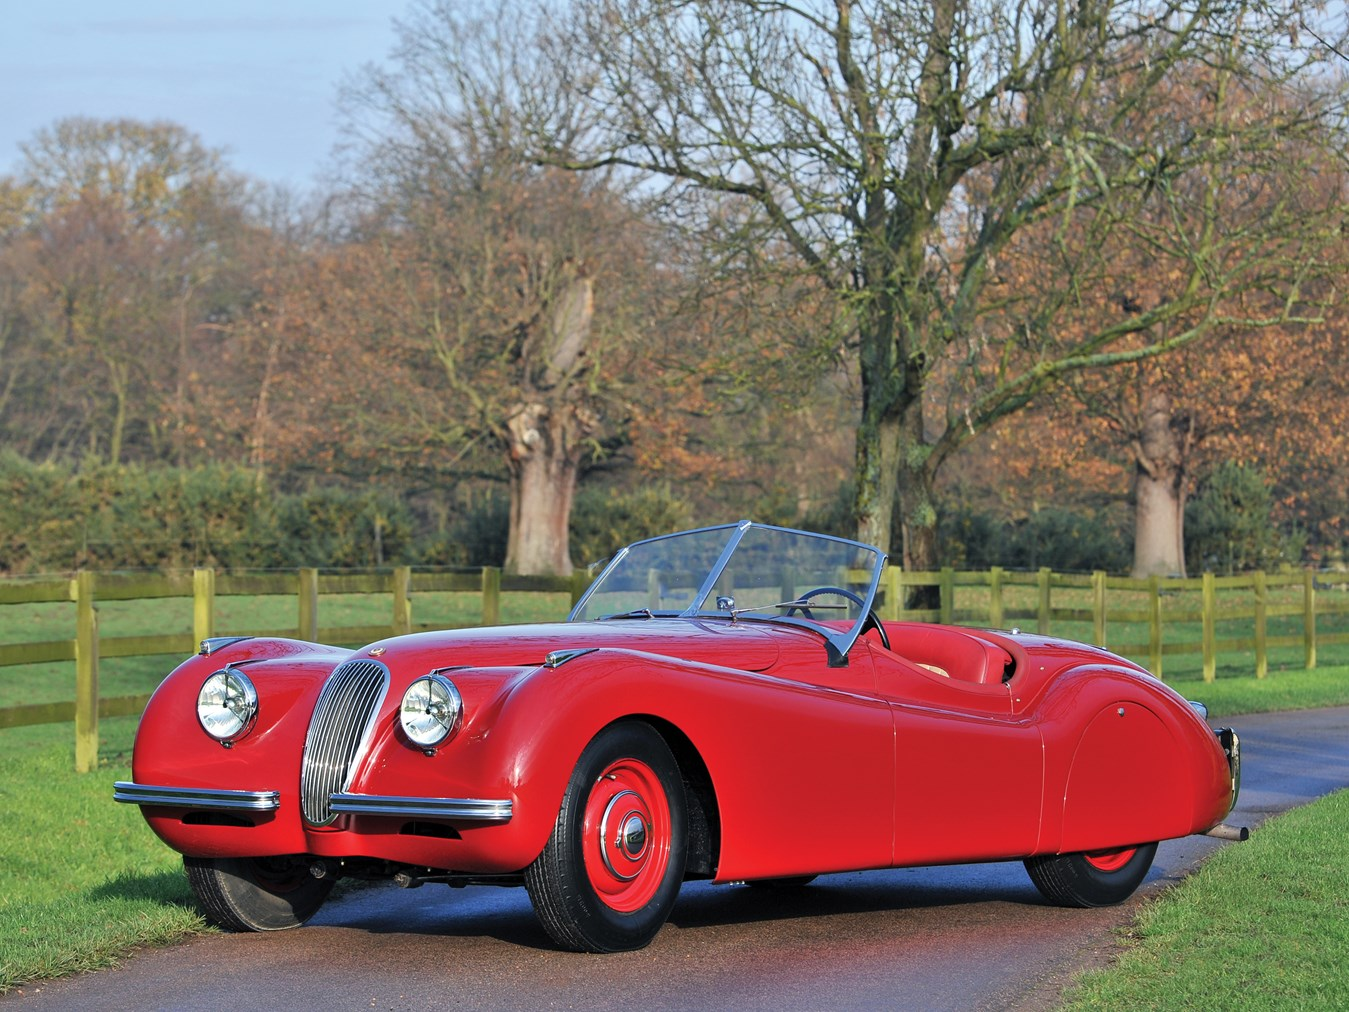 rm sotheby 39 s r137 1949 jaguar xk120 alloy roadster. Black Bedroom Furniture Sets. Home Design Ideas